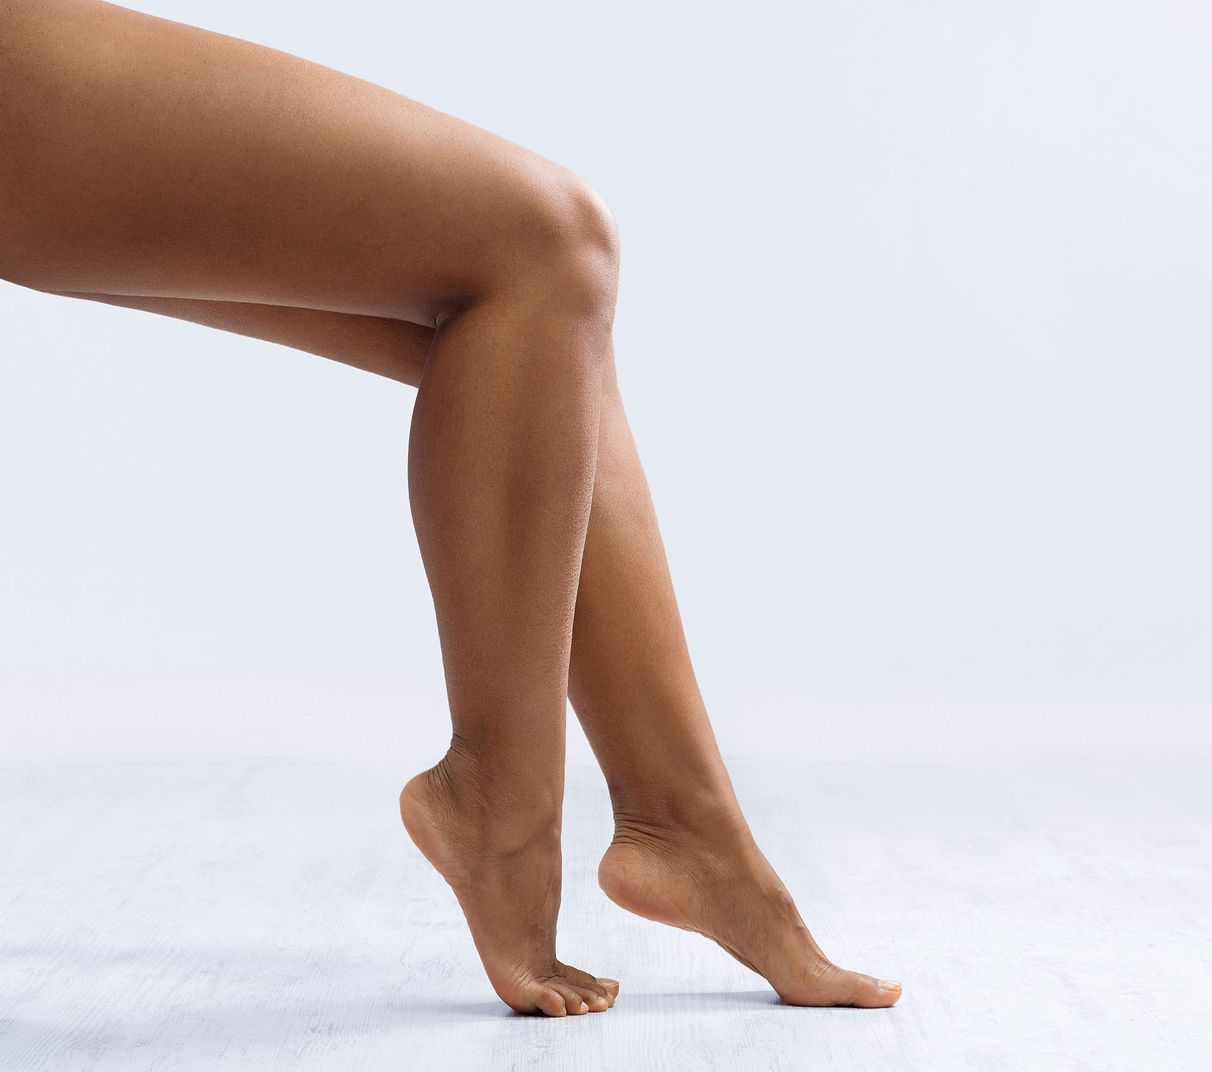 Picture of legs from a person sitting down, barefoot, showing only below the knee.